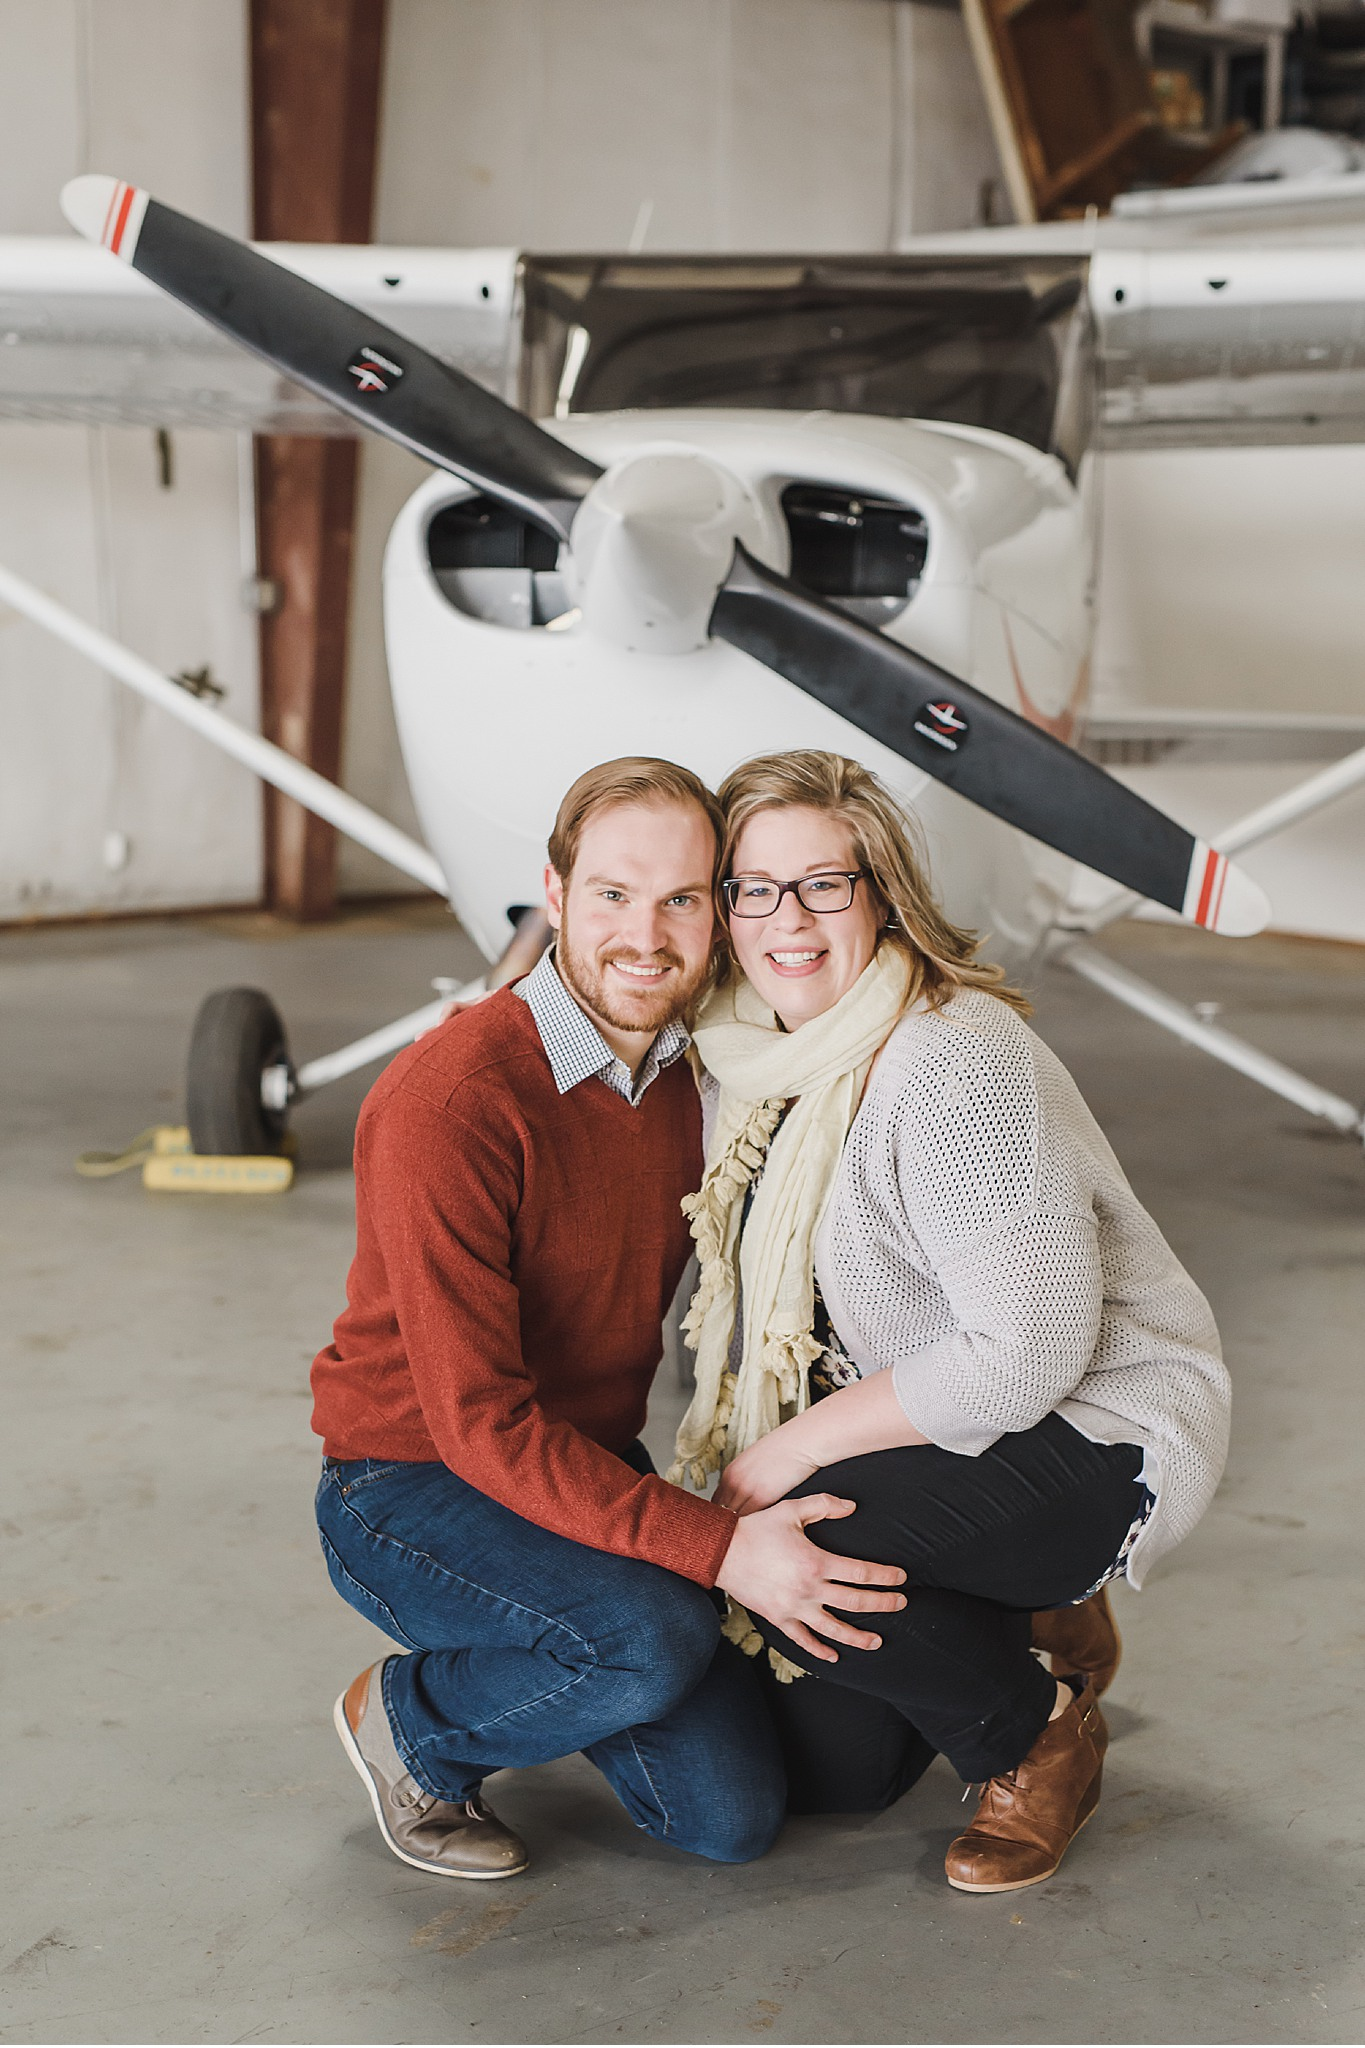 Lancaster airport Lititz Wedding photographer engagement session photo_2930.jpg